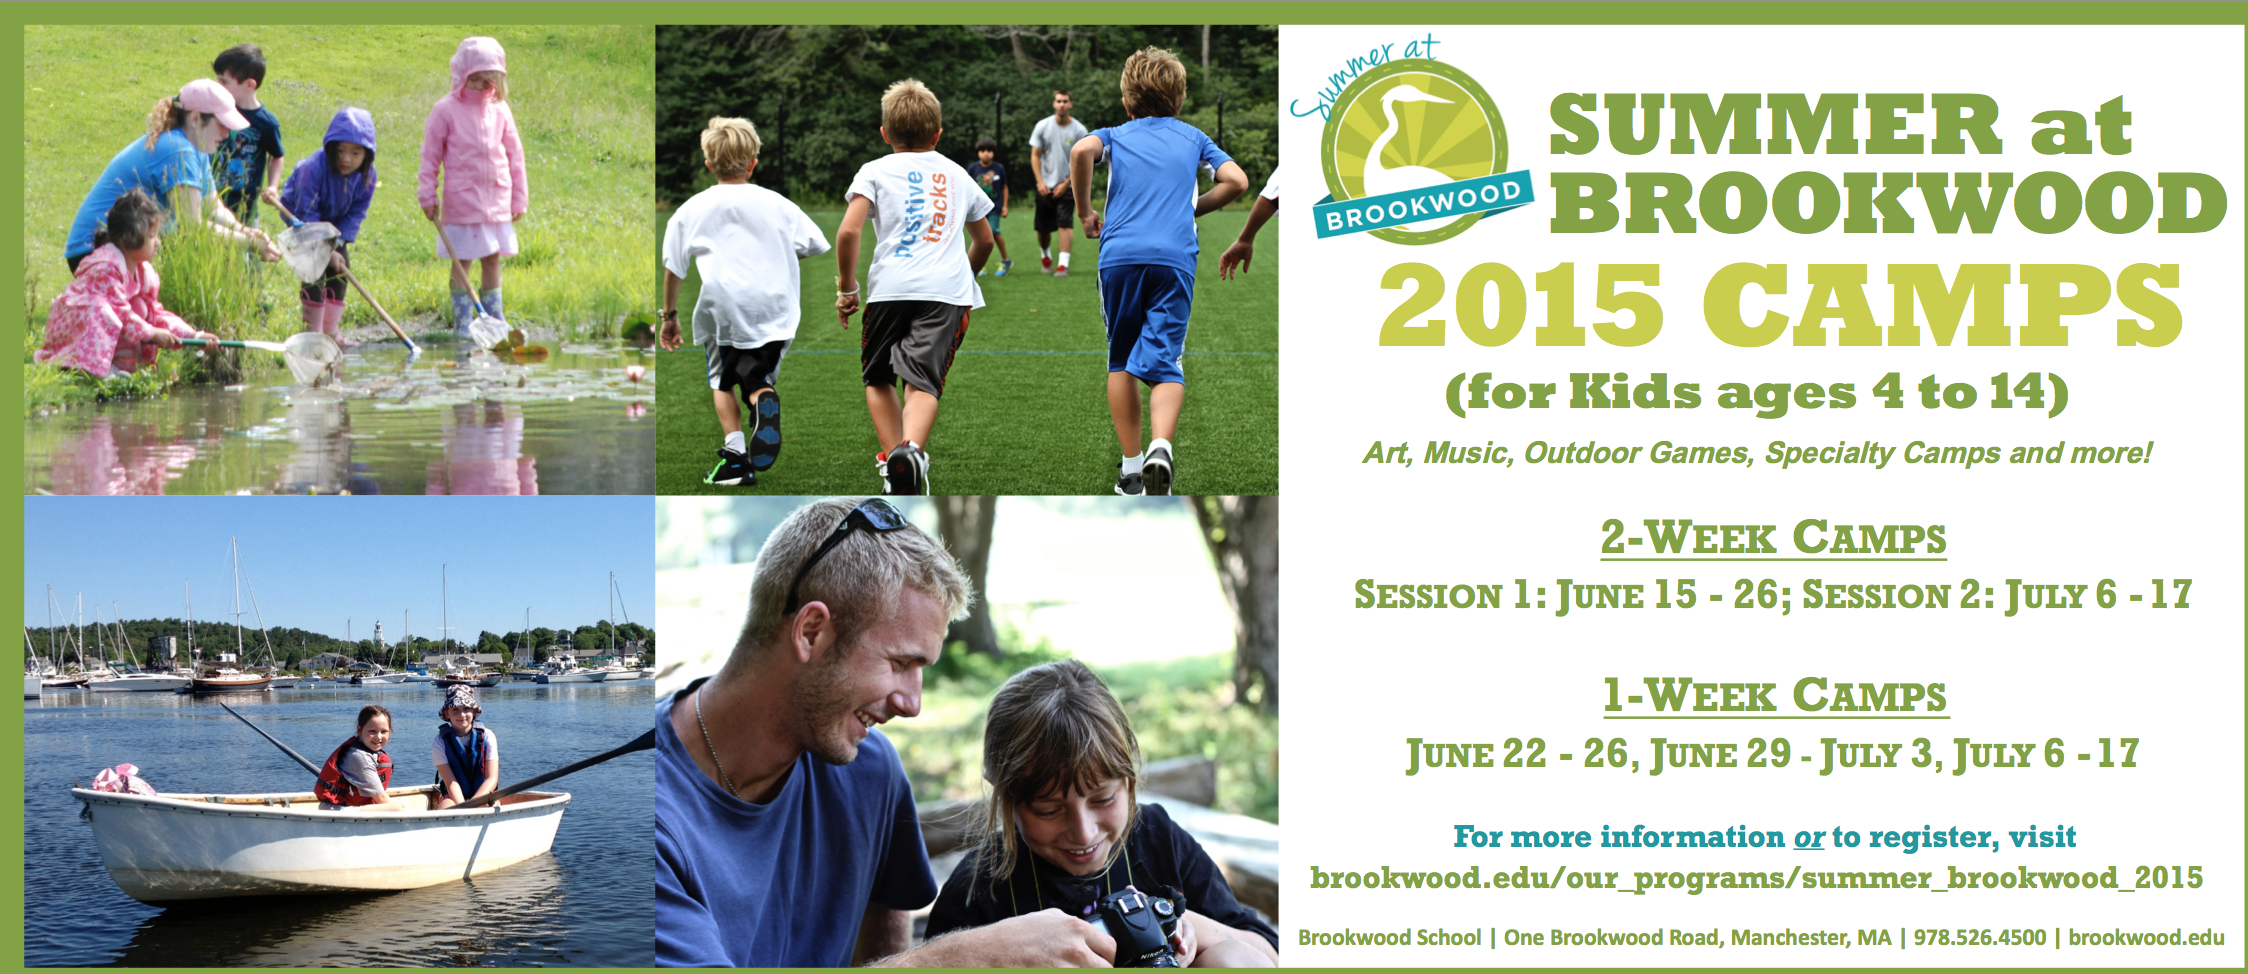 New Summer at Brookwood Summer 2015